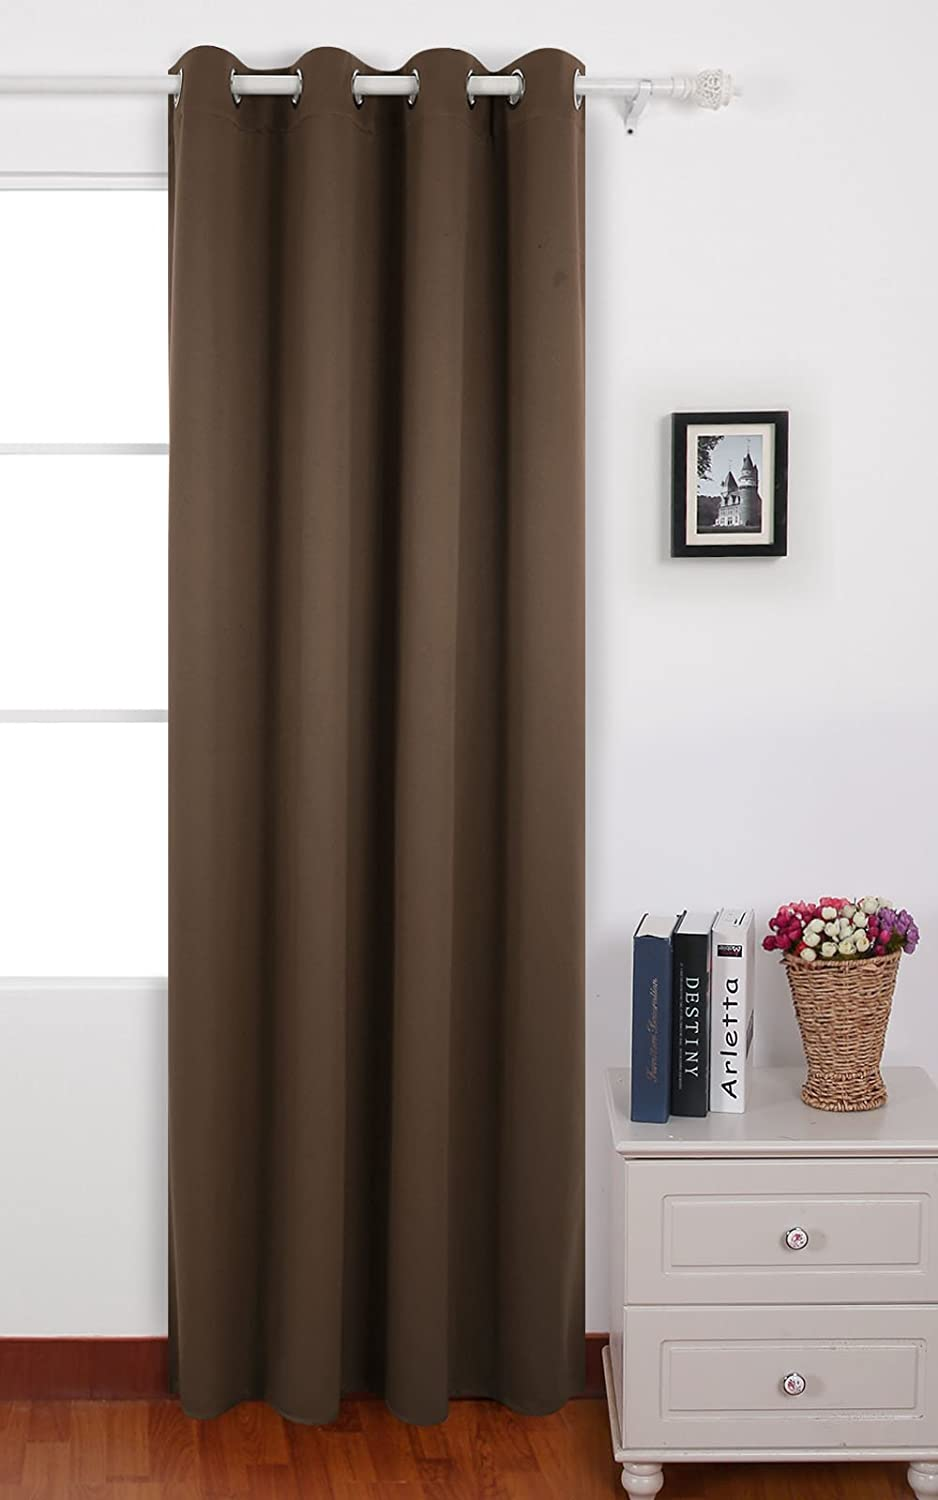 Good Deconovo Brown Thermal Insulated Bedroom Window Blackout Curtains 52 By 63  Inch One Panel: Amazon.ca: Home U0026 Kitchen